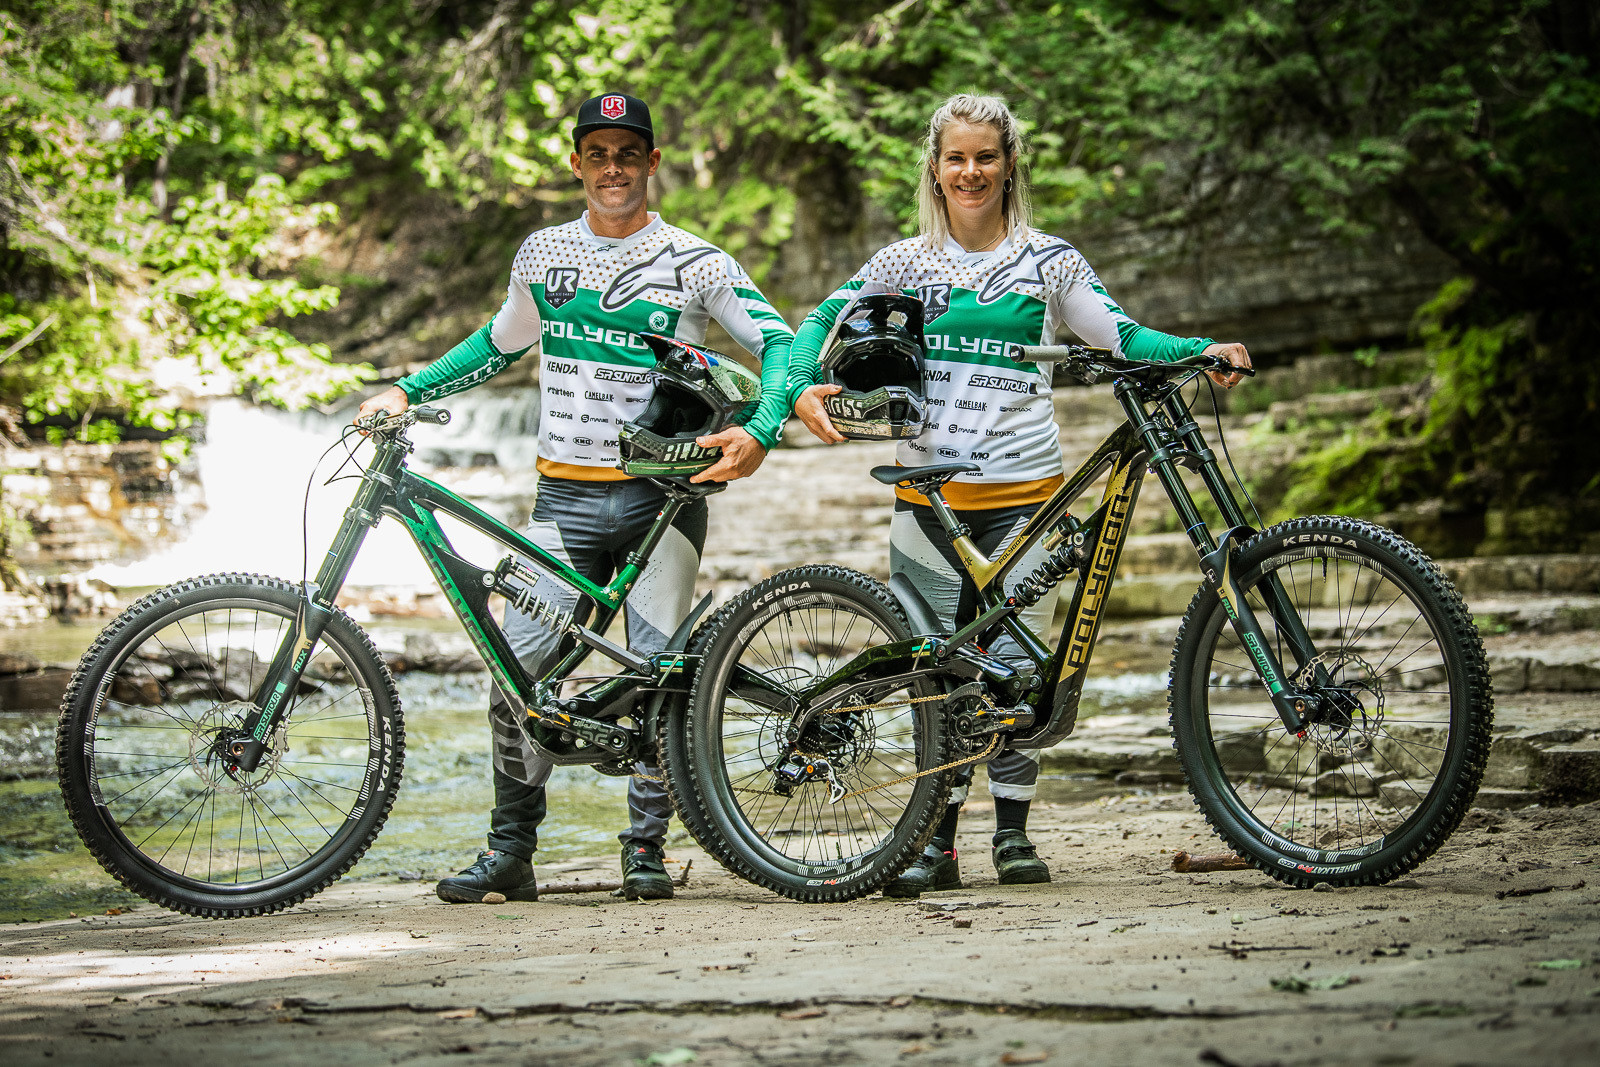 Tracey and Mick Hannah with their World Champs Polygon Race Bikes - Tracey and Mick Hannah's World Champs Polygon DH Race Bikes - Mountain Biking Pictures - Vital MTB